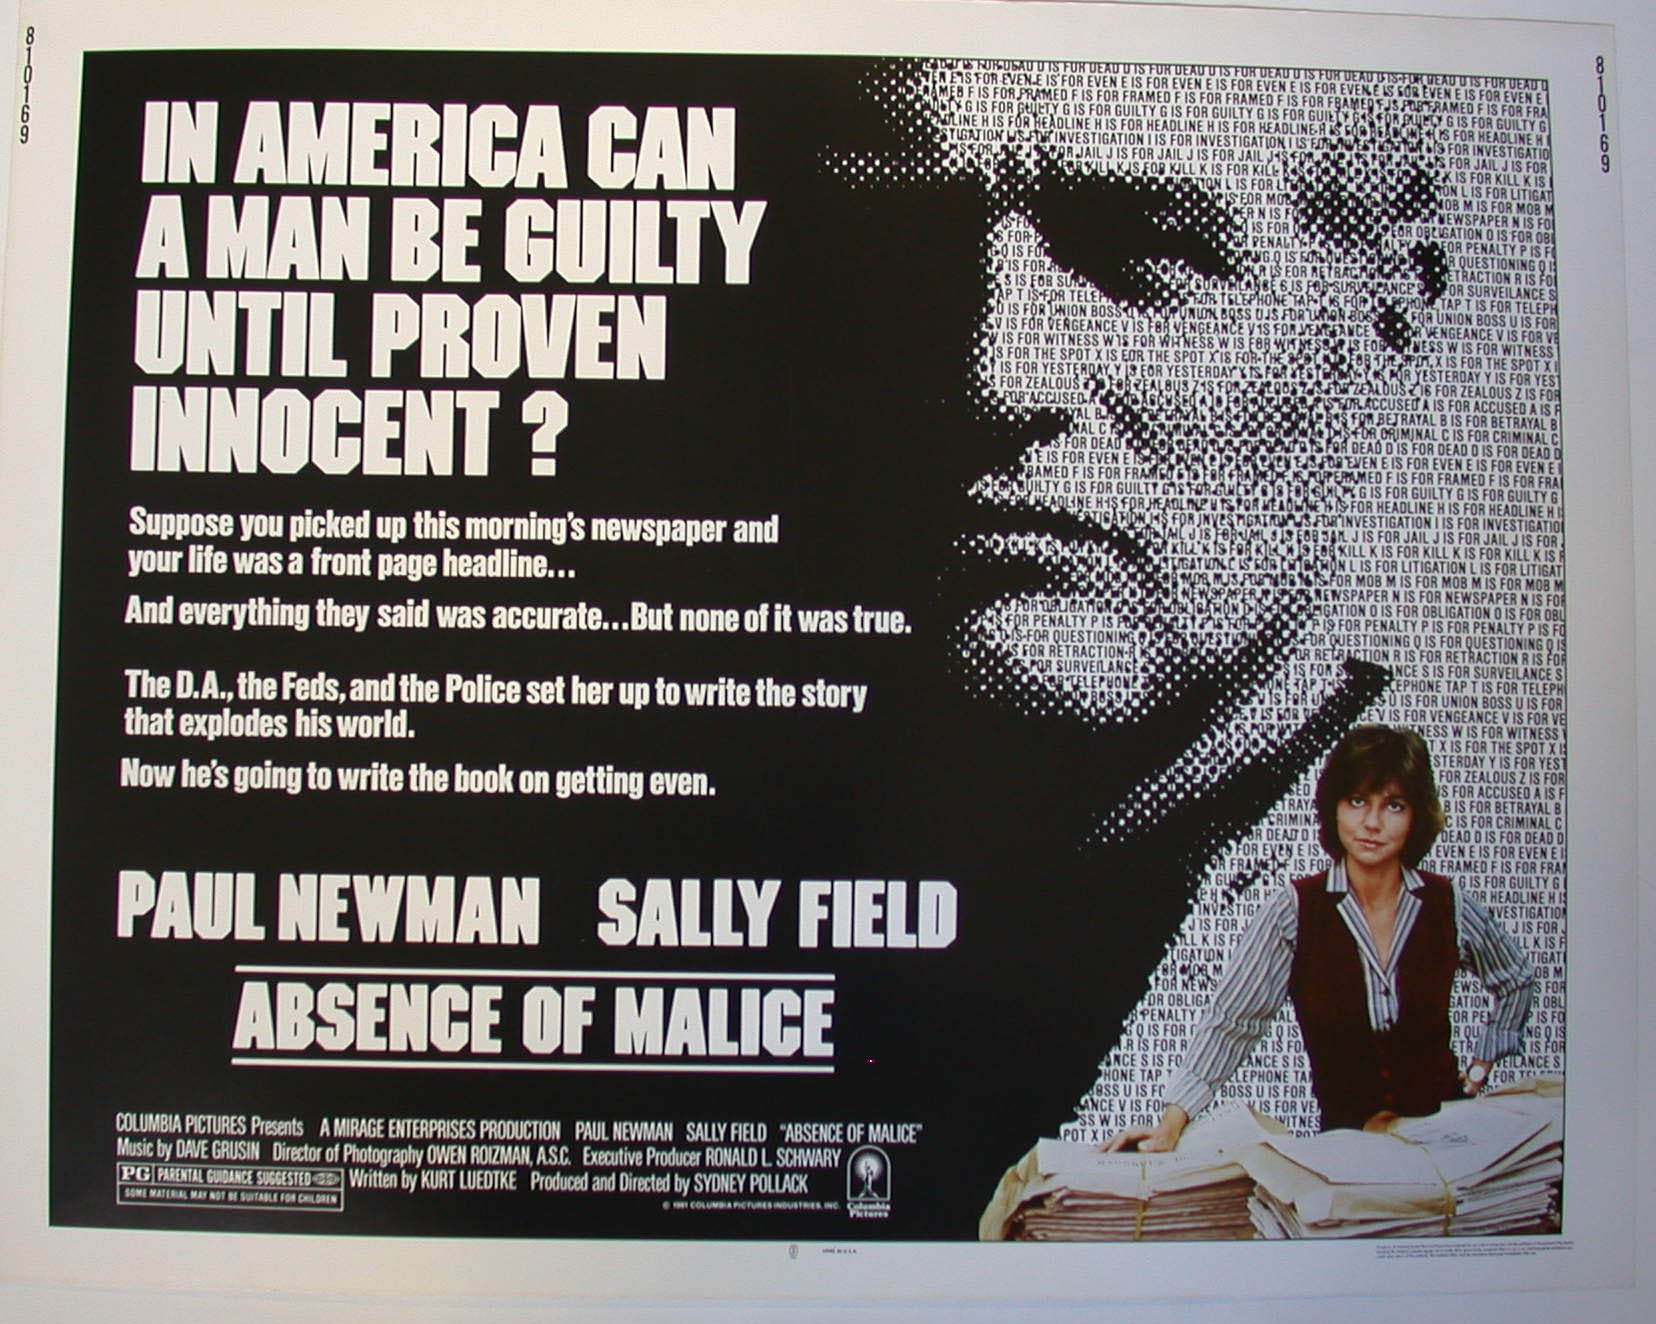 http://postermuseum.com/11111/1film/Absence.Malice.28x22.JPG